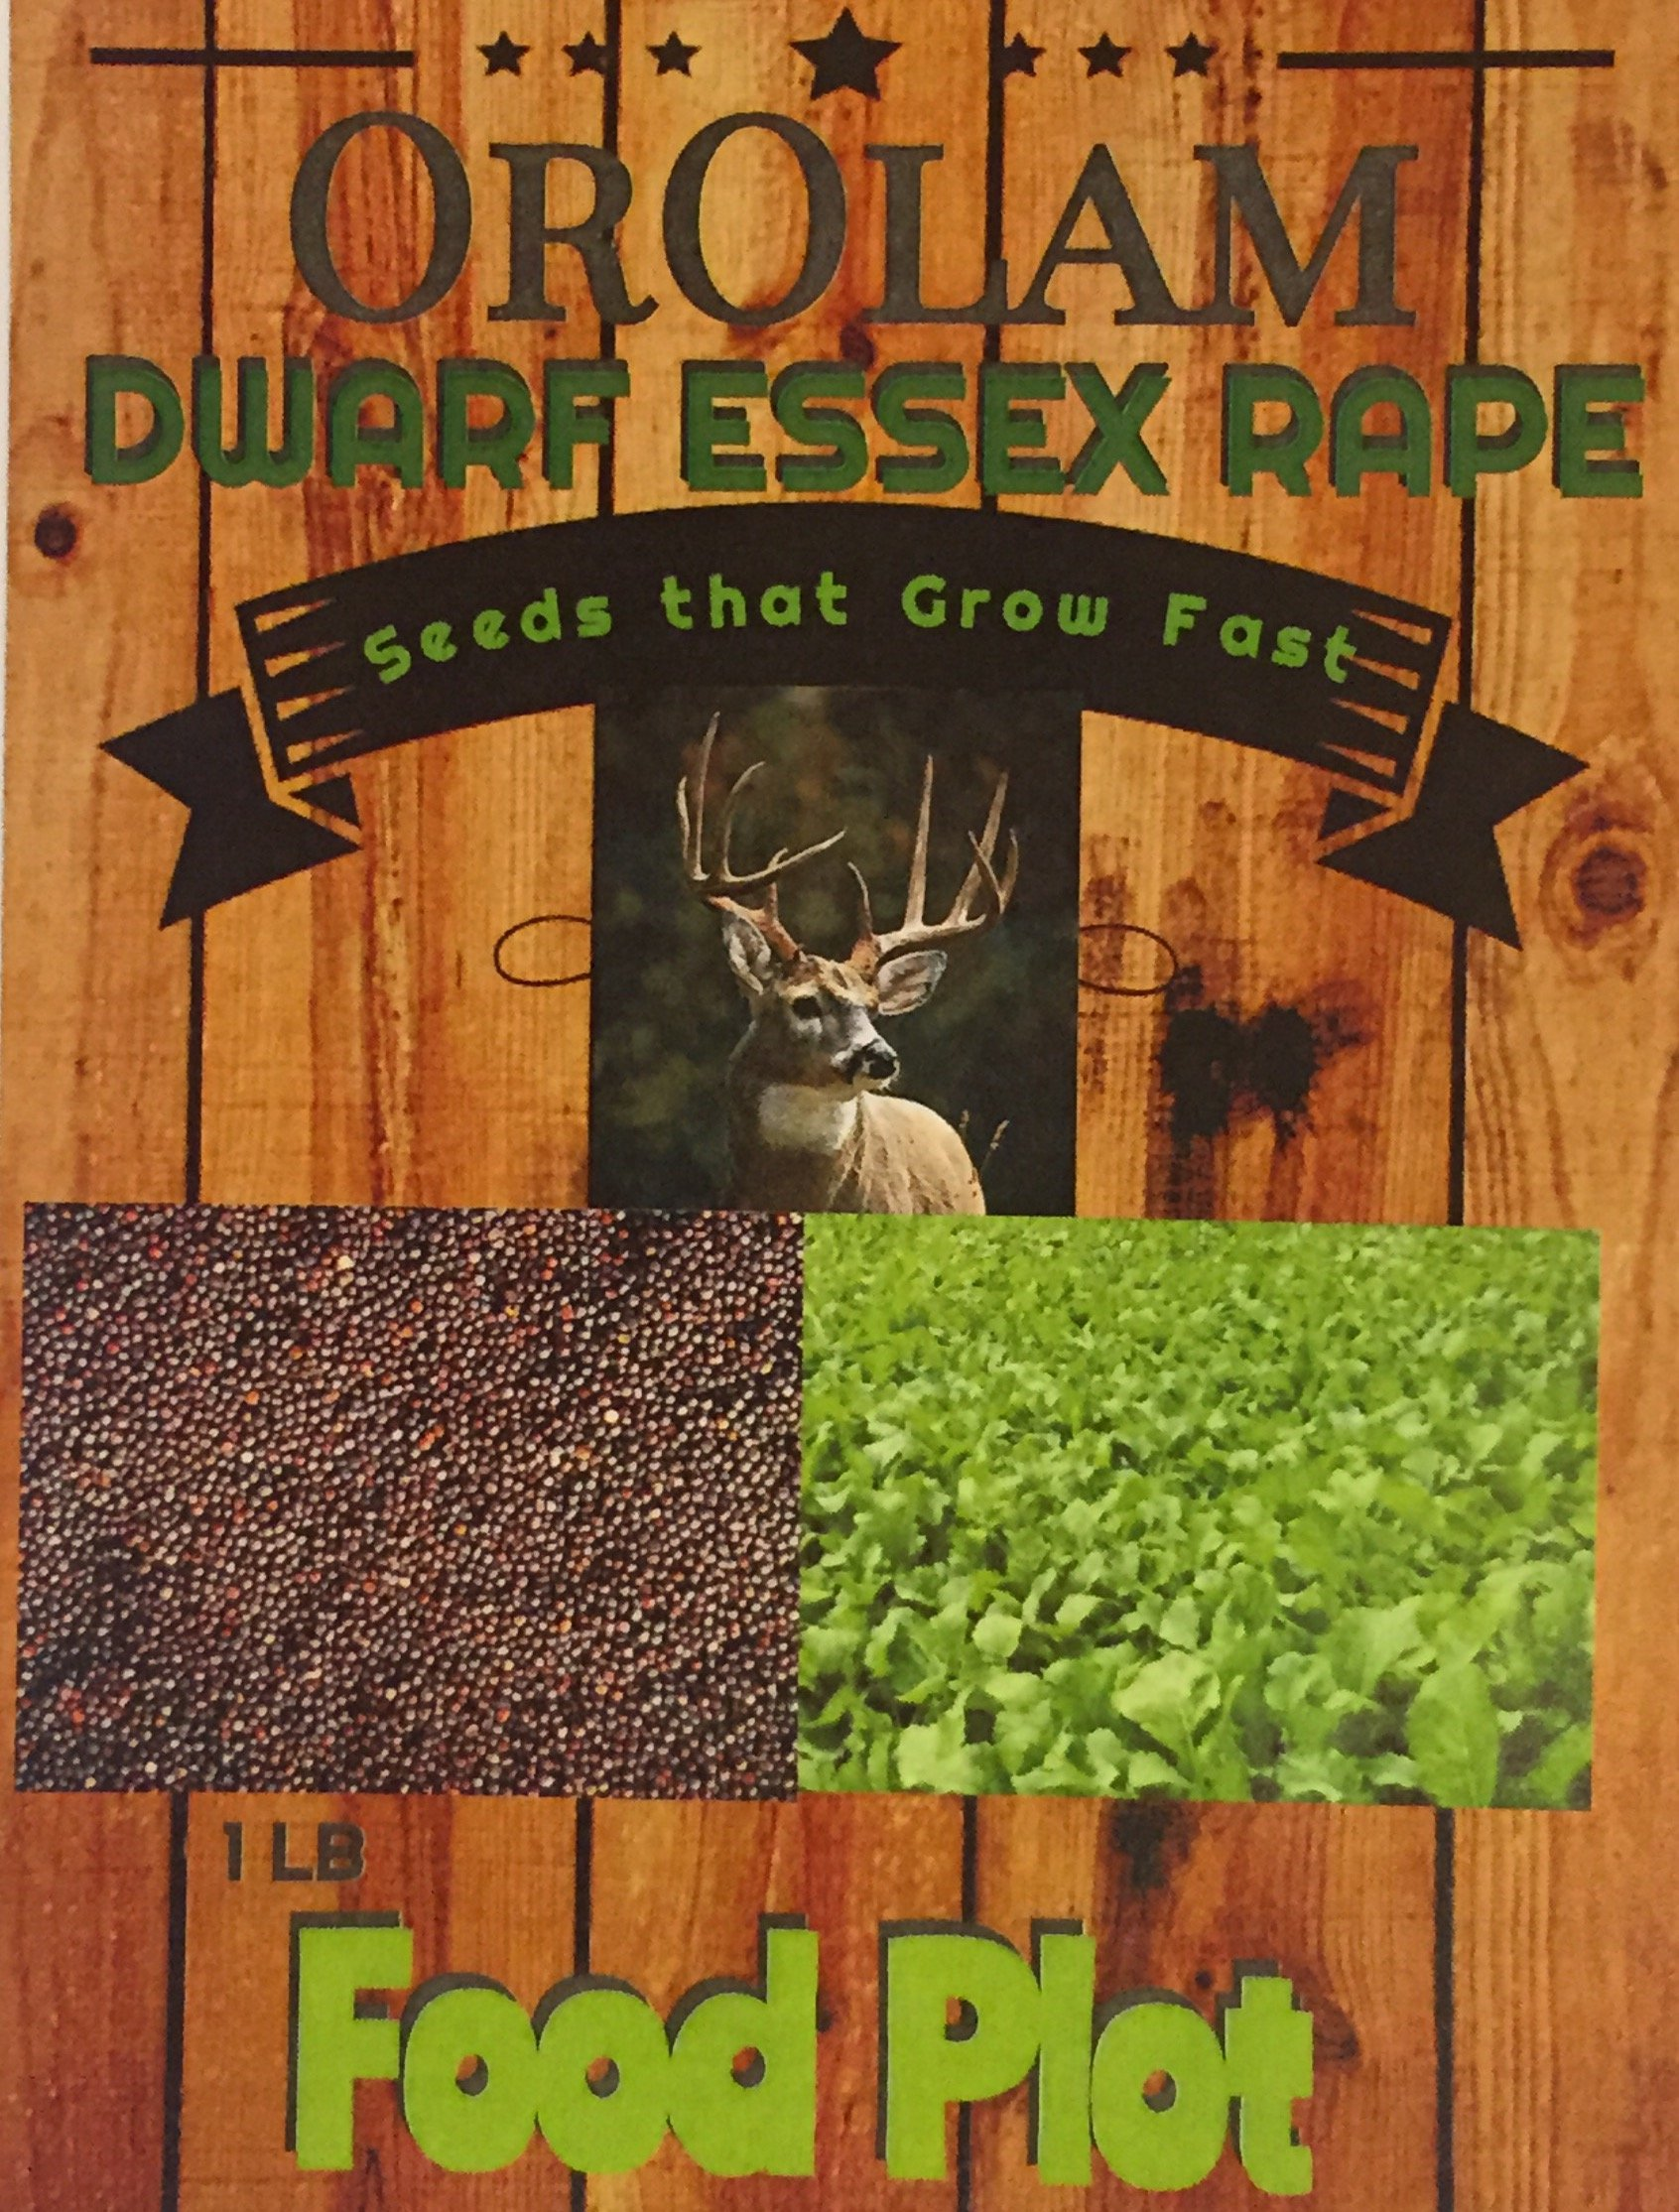 OrOlam King Shot Forage Food Plot Bulk Dwarf Essex Rape Seeds Whitetail Deer Goose Honey Bee''Seeds That Grow Fast'' 5 Lb by OrOlam